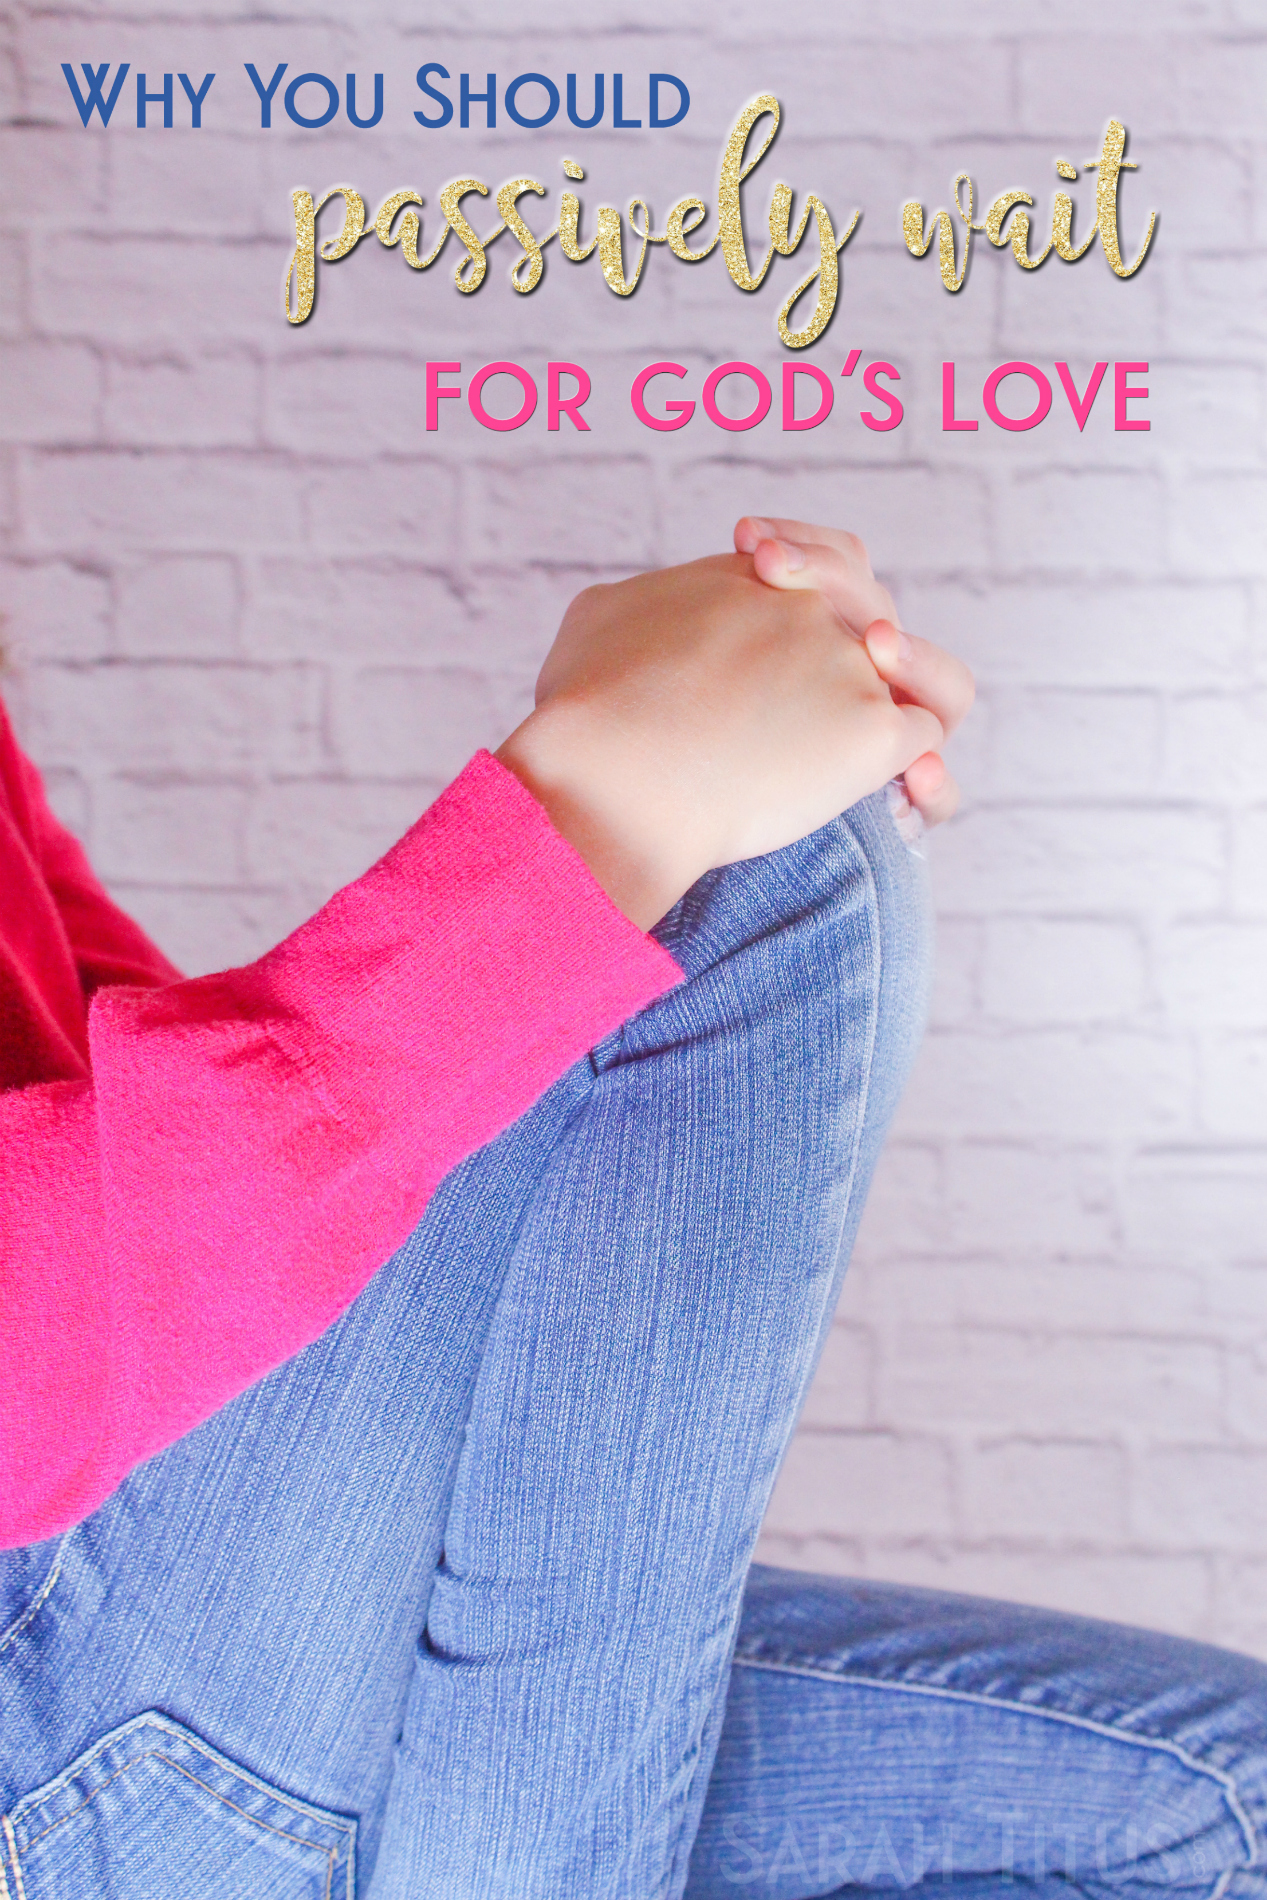 God's best for your life is a lot better than your best for your life. Here's why you should passively wait for God's love in a culture that says you shouldn't.